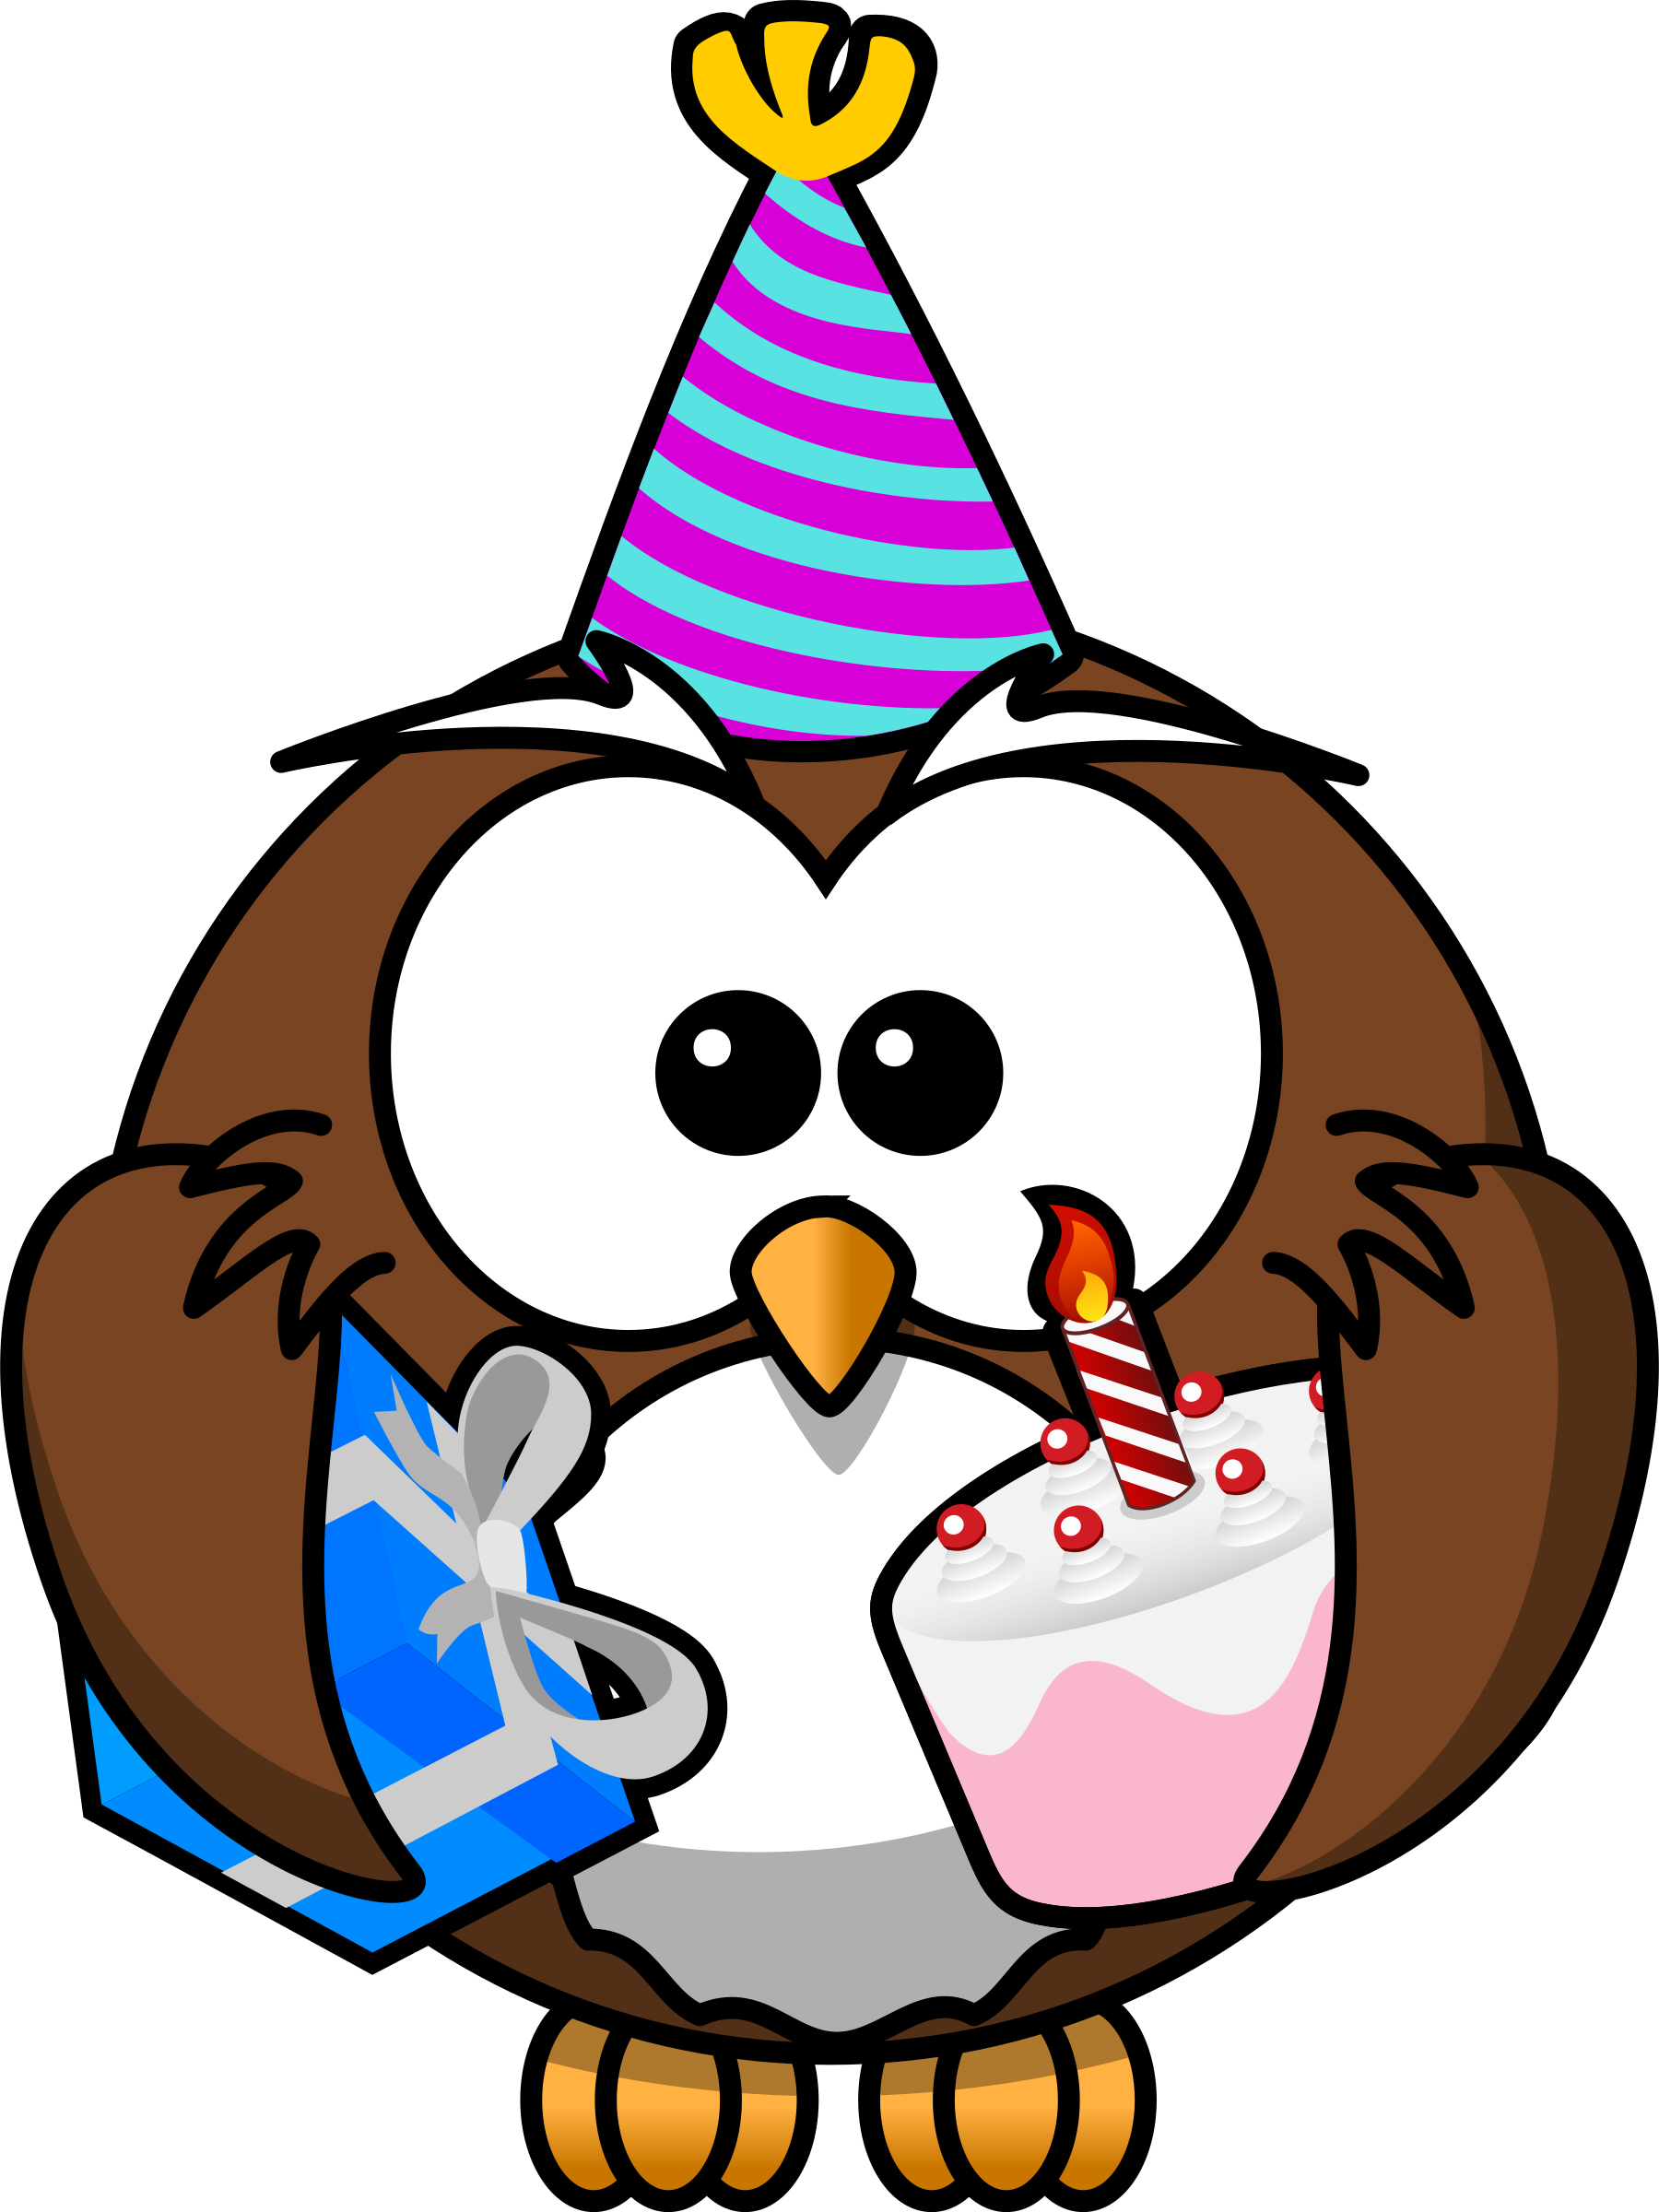 October clipart cute. Owl party big image